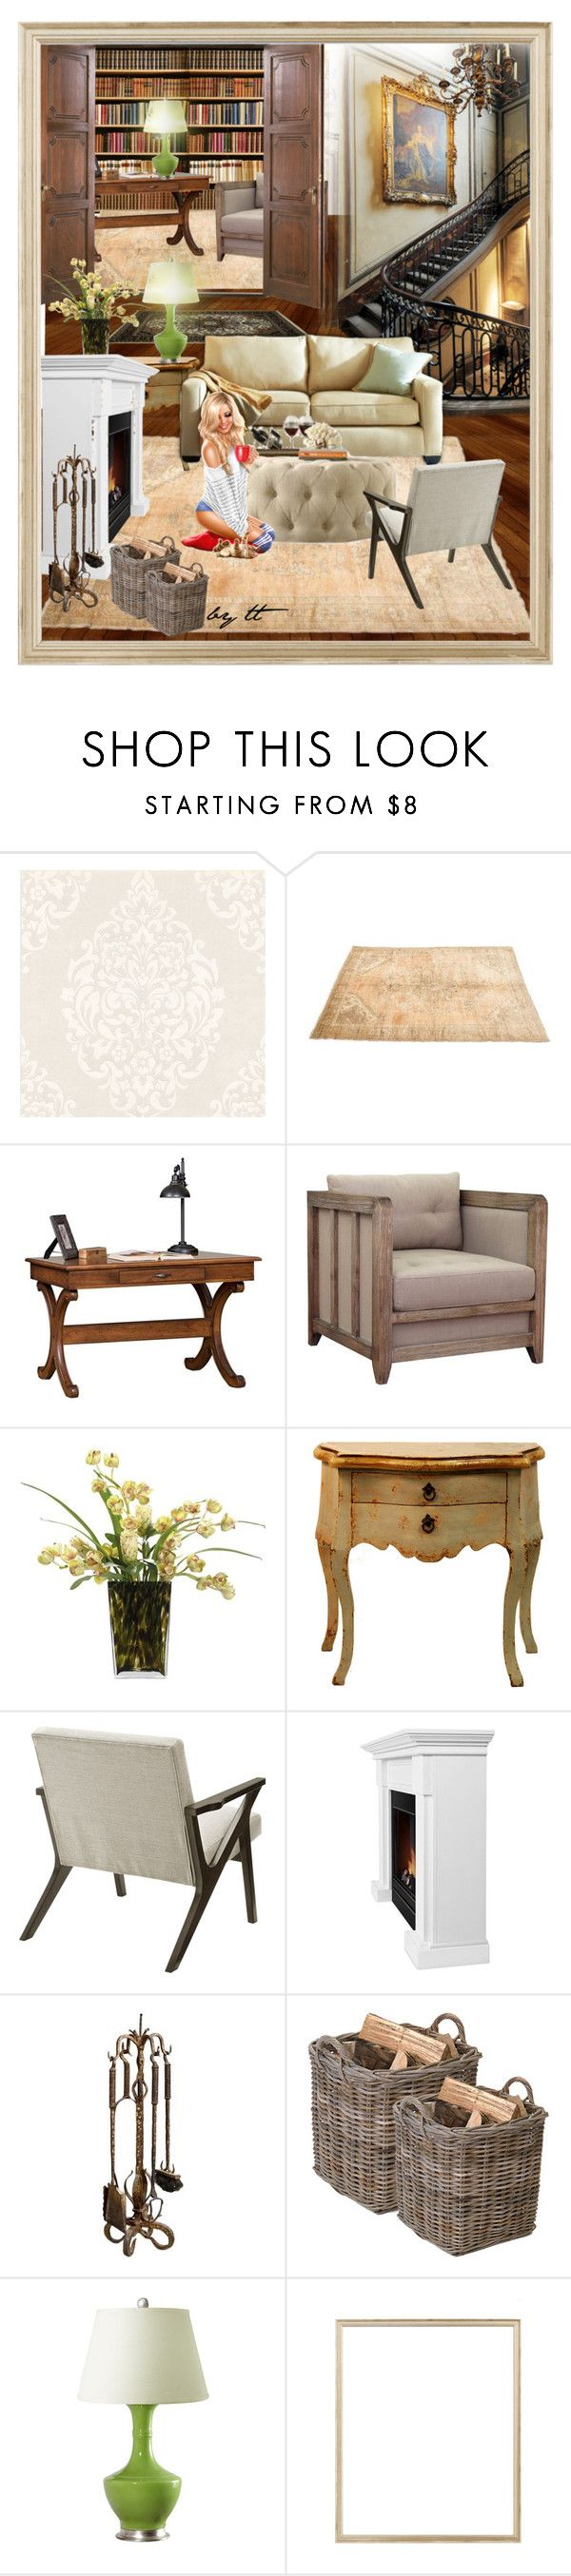 """""""Meaning Of January Contest, """"Doorways, II""""...by tt"""" by fowlerteetee ❤ liked on Polyvore featuring interior, interiors, interior design, home, home decor, interior decorating, Bellini, DutchCrafters, I Love Living and Ethan Allen"""